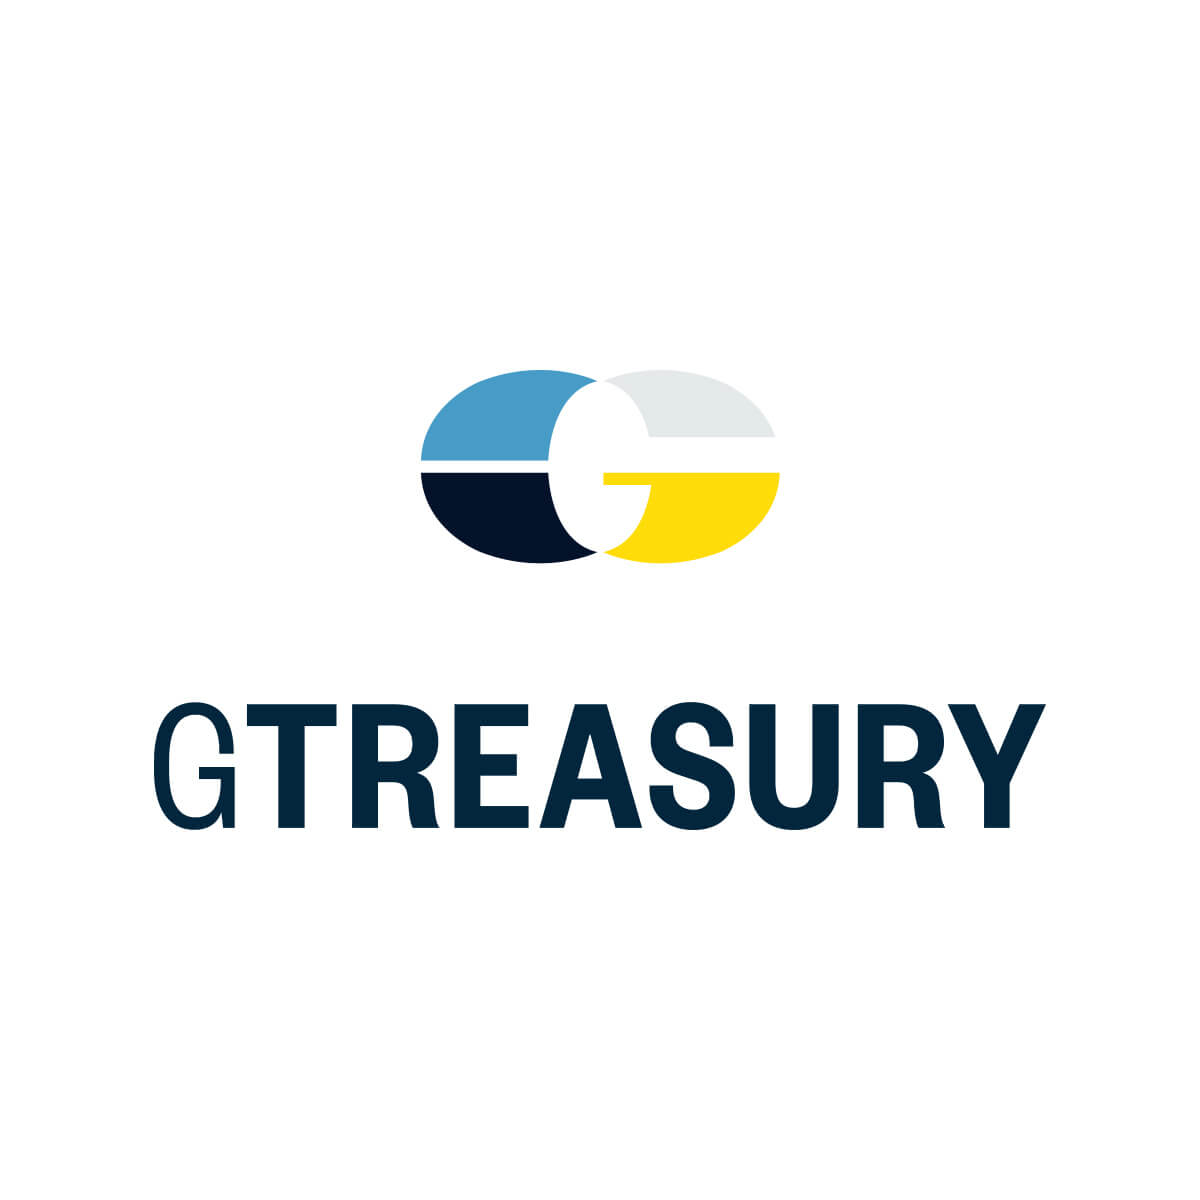 https://grafik.agency/wp-content/uploads/gtreasury-logo@2x.jpg